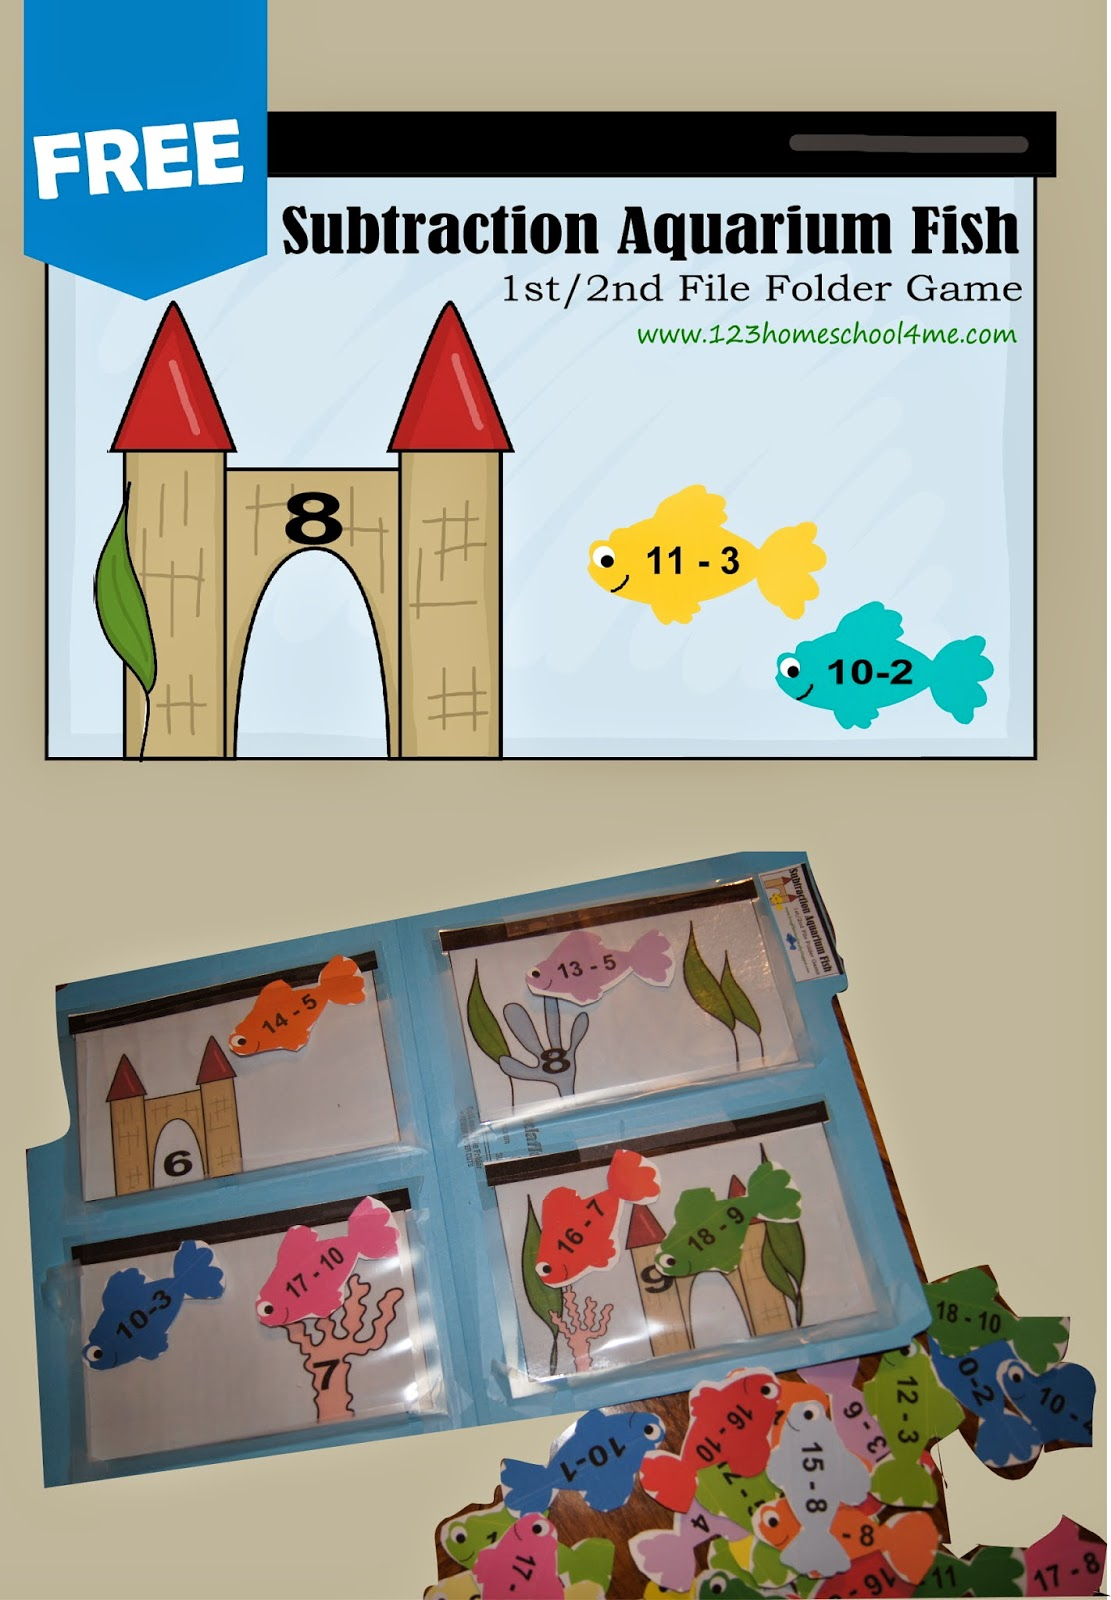 ... math games for 1st grade and 2nd grade kids with a Aquarium fish theme